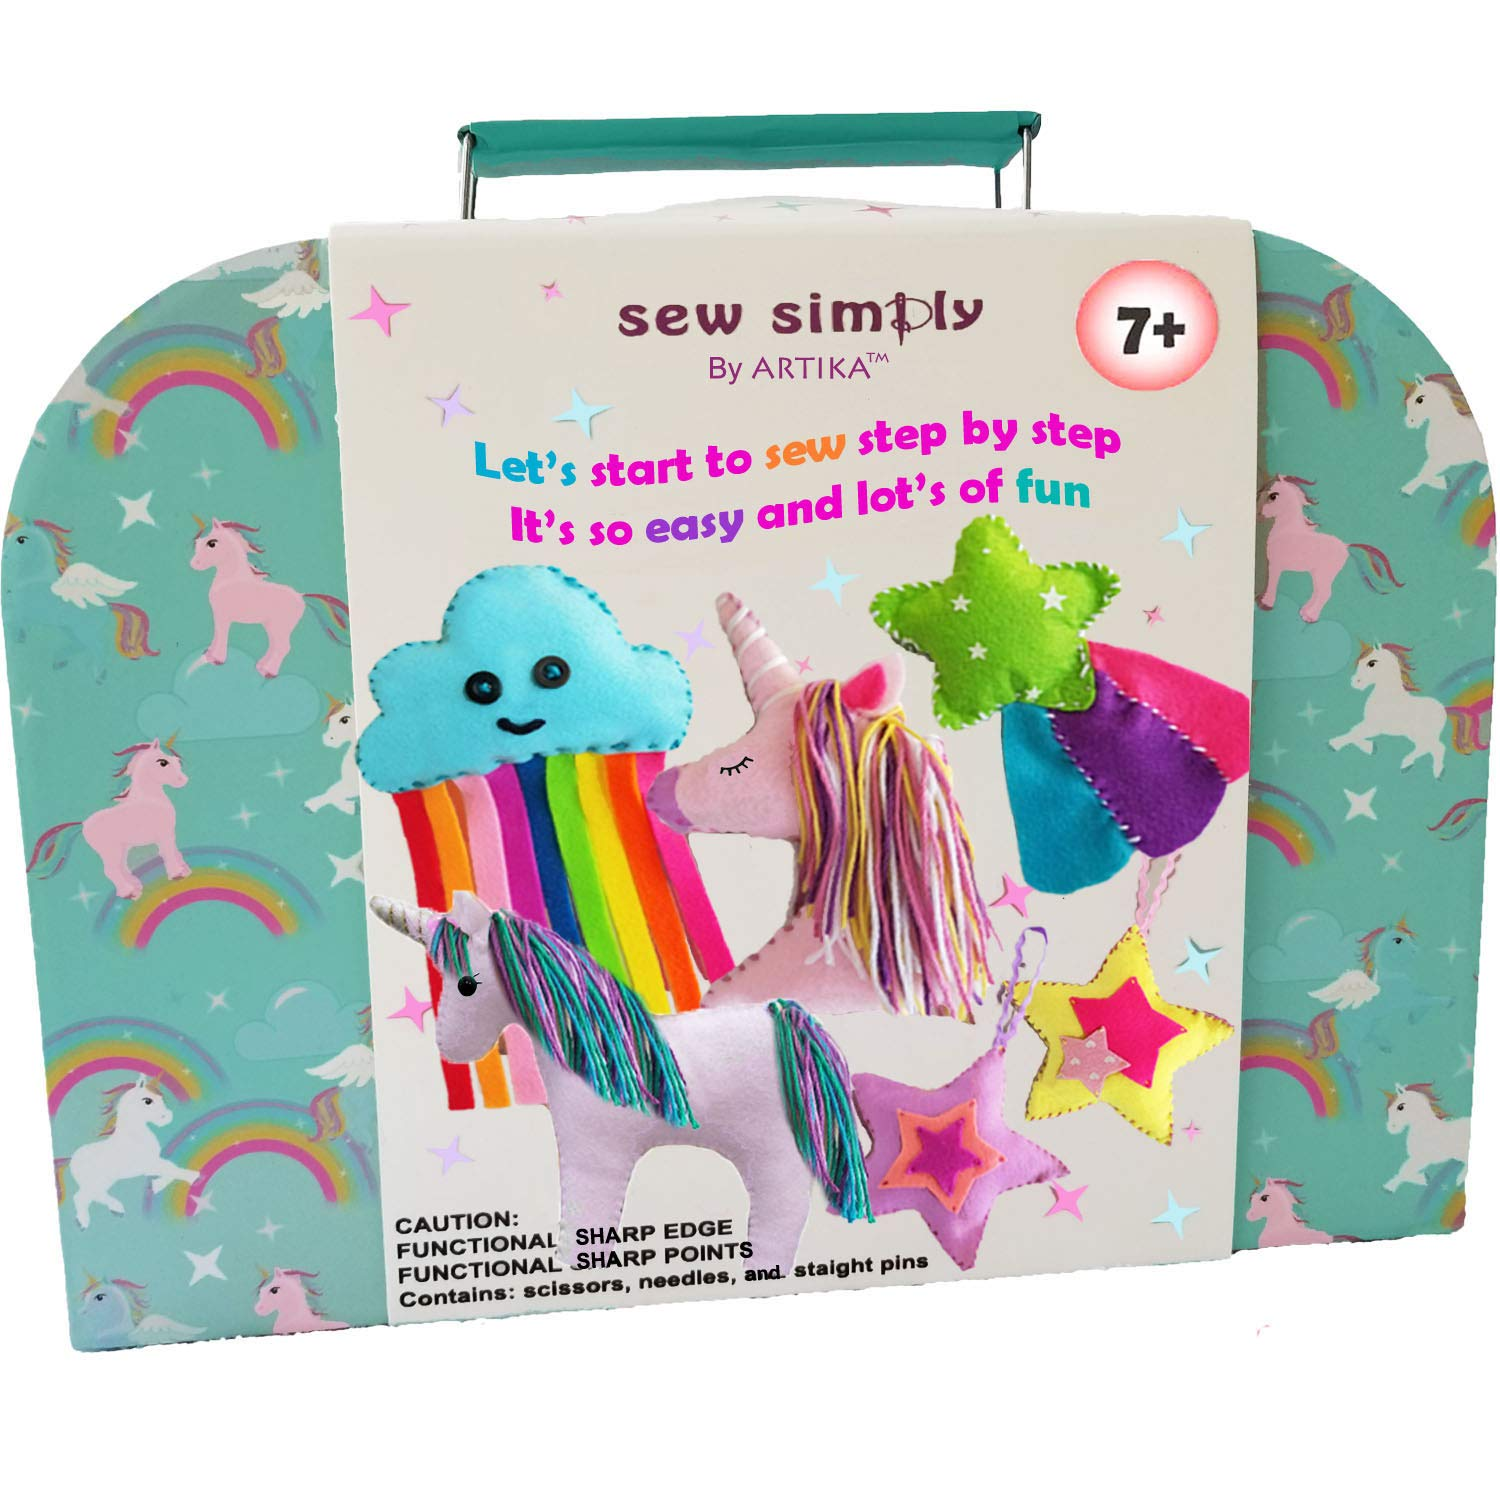 SEWING KIT FOR KIDS, Unicorns DIY Craft for Girls Over 110 ...